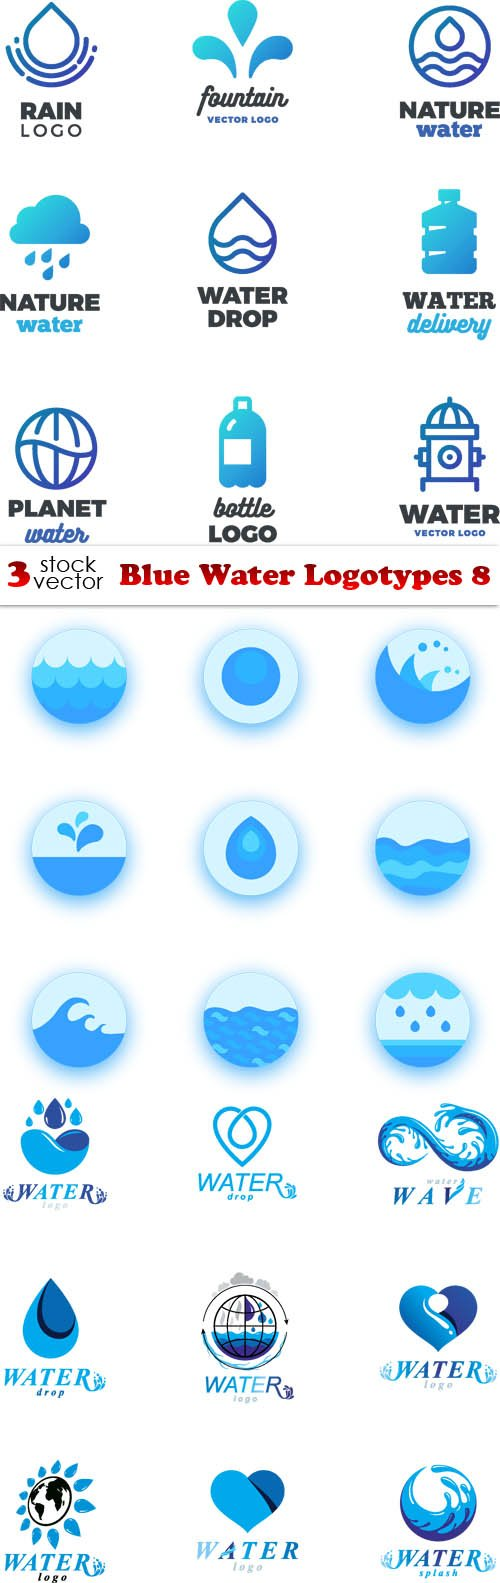 Vectors - Blue Water Logotypes 8